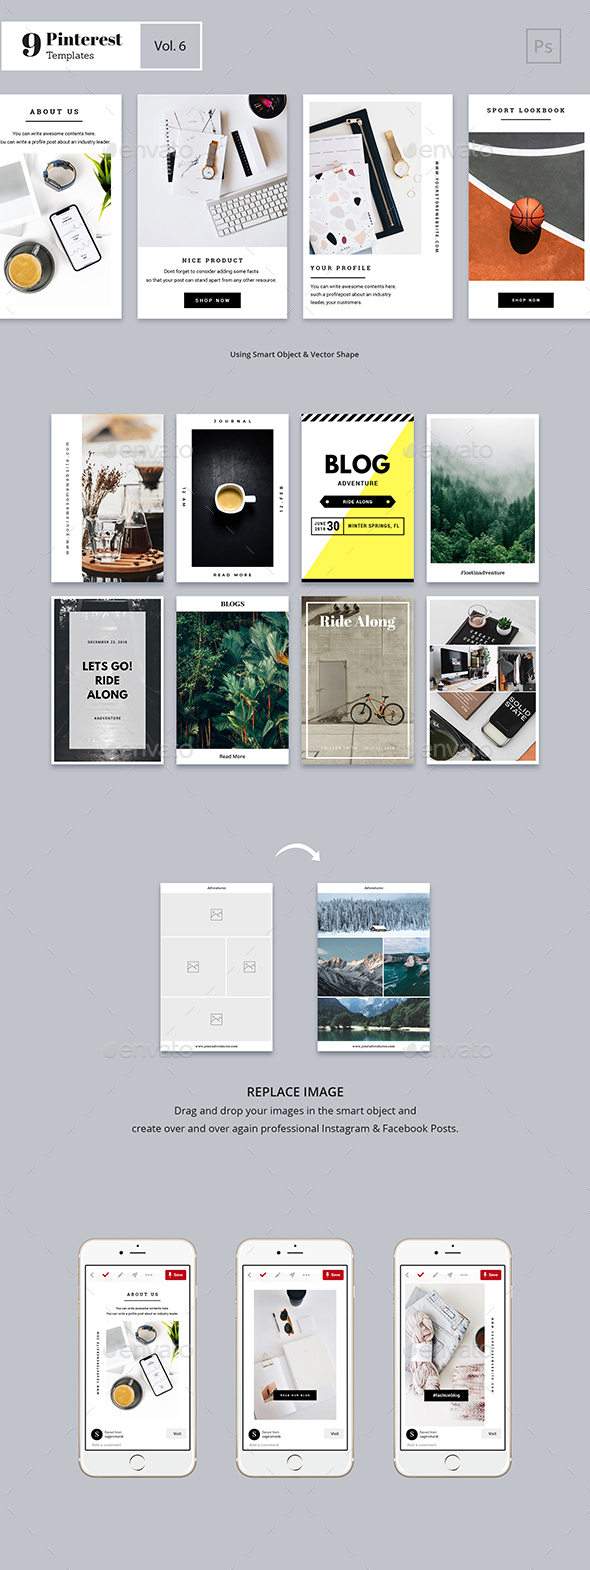 25 Pinterest PSD Graphics, Designs & Templates from GraphicRiver